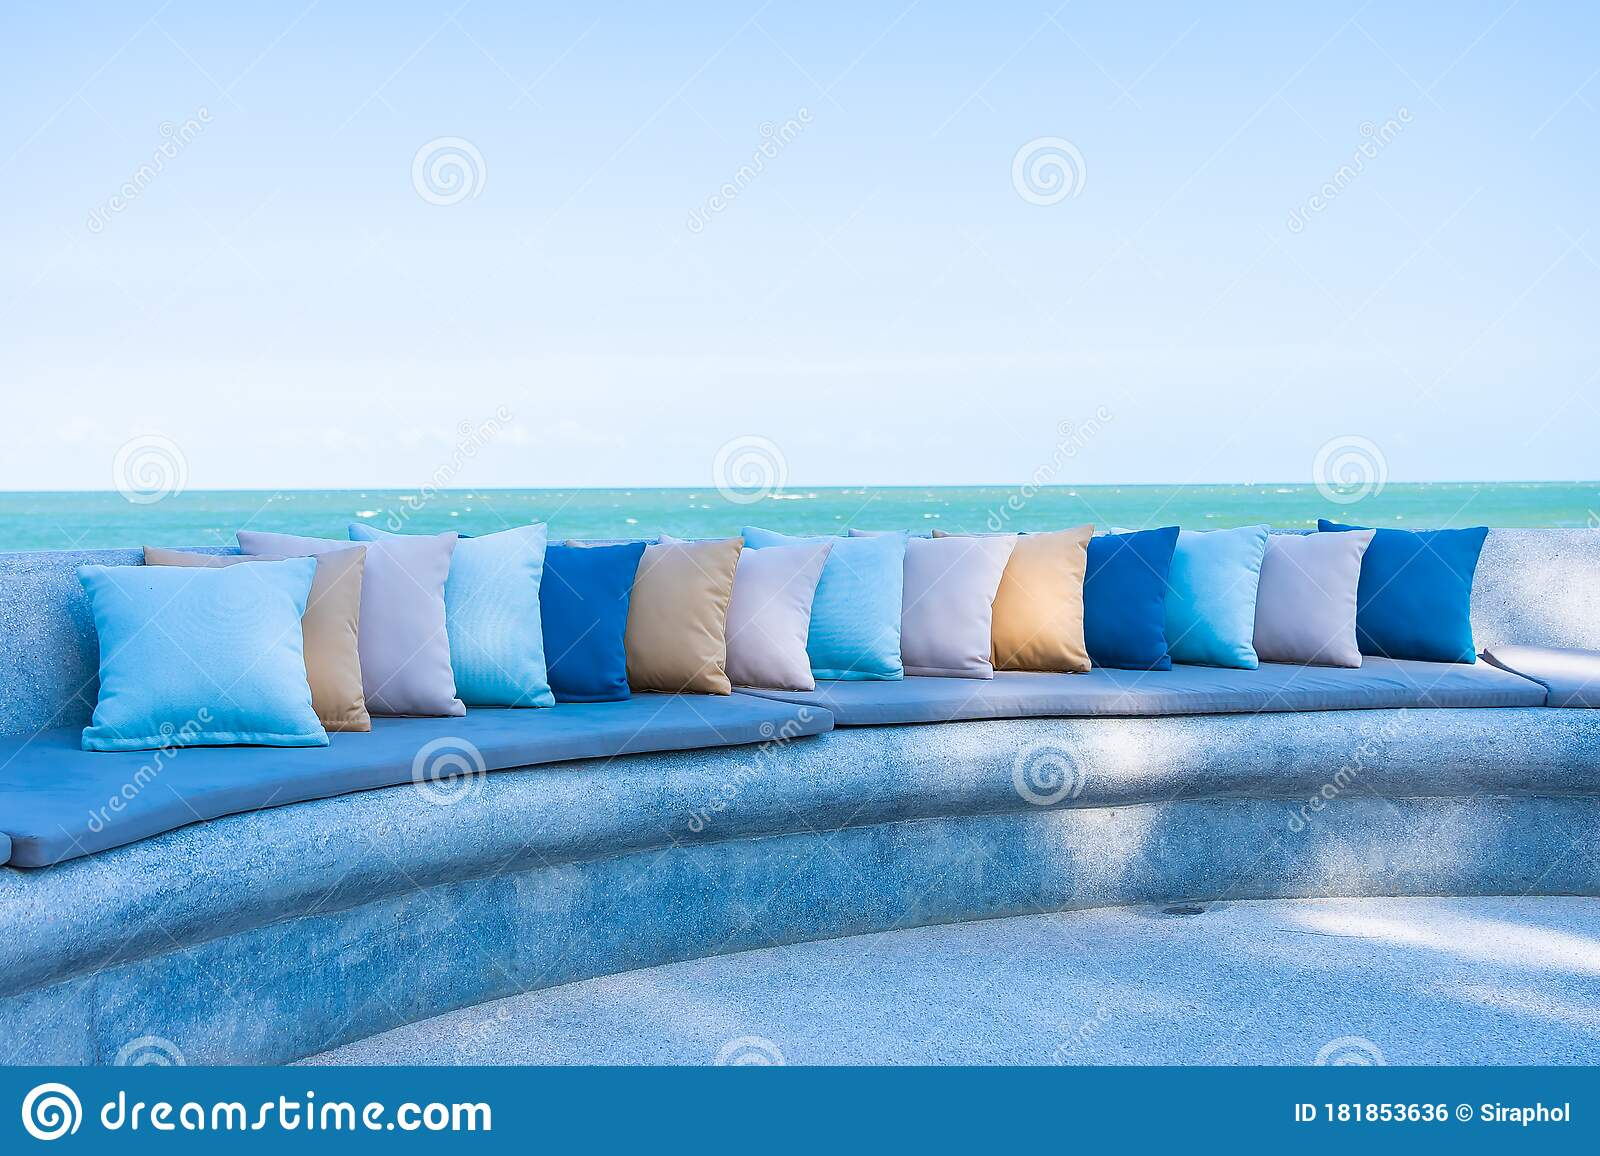 pillow on chair or sofa lounge around outdoor patio with sea ocean beach view stock photo image of pool design 181853636